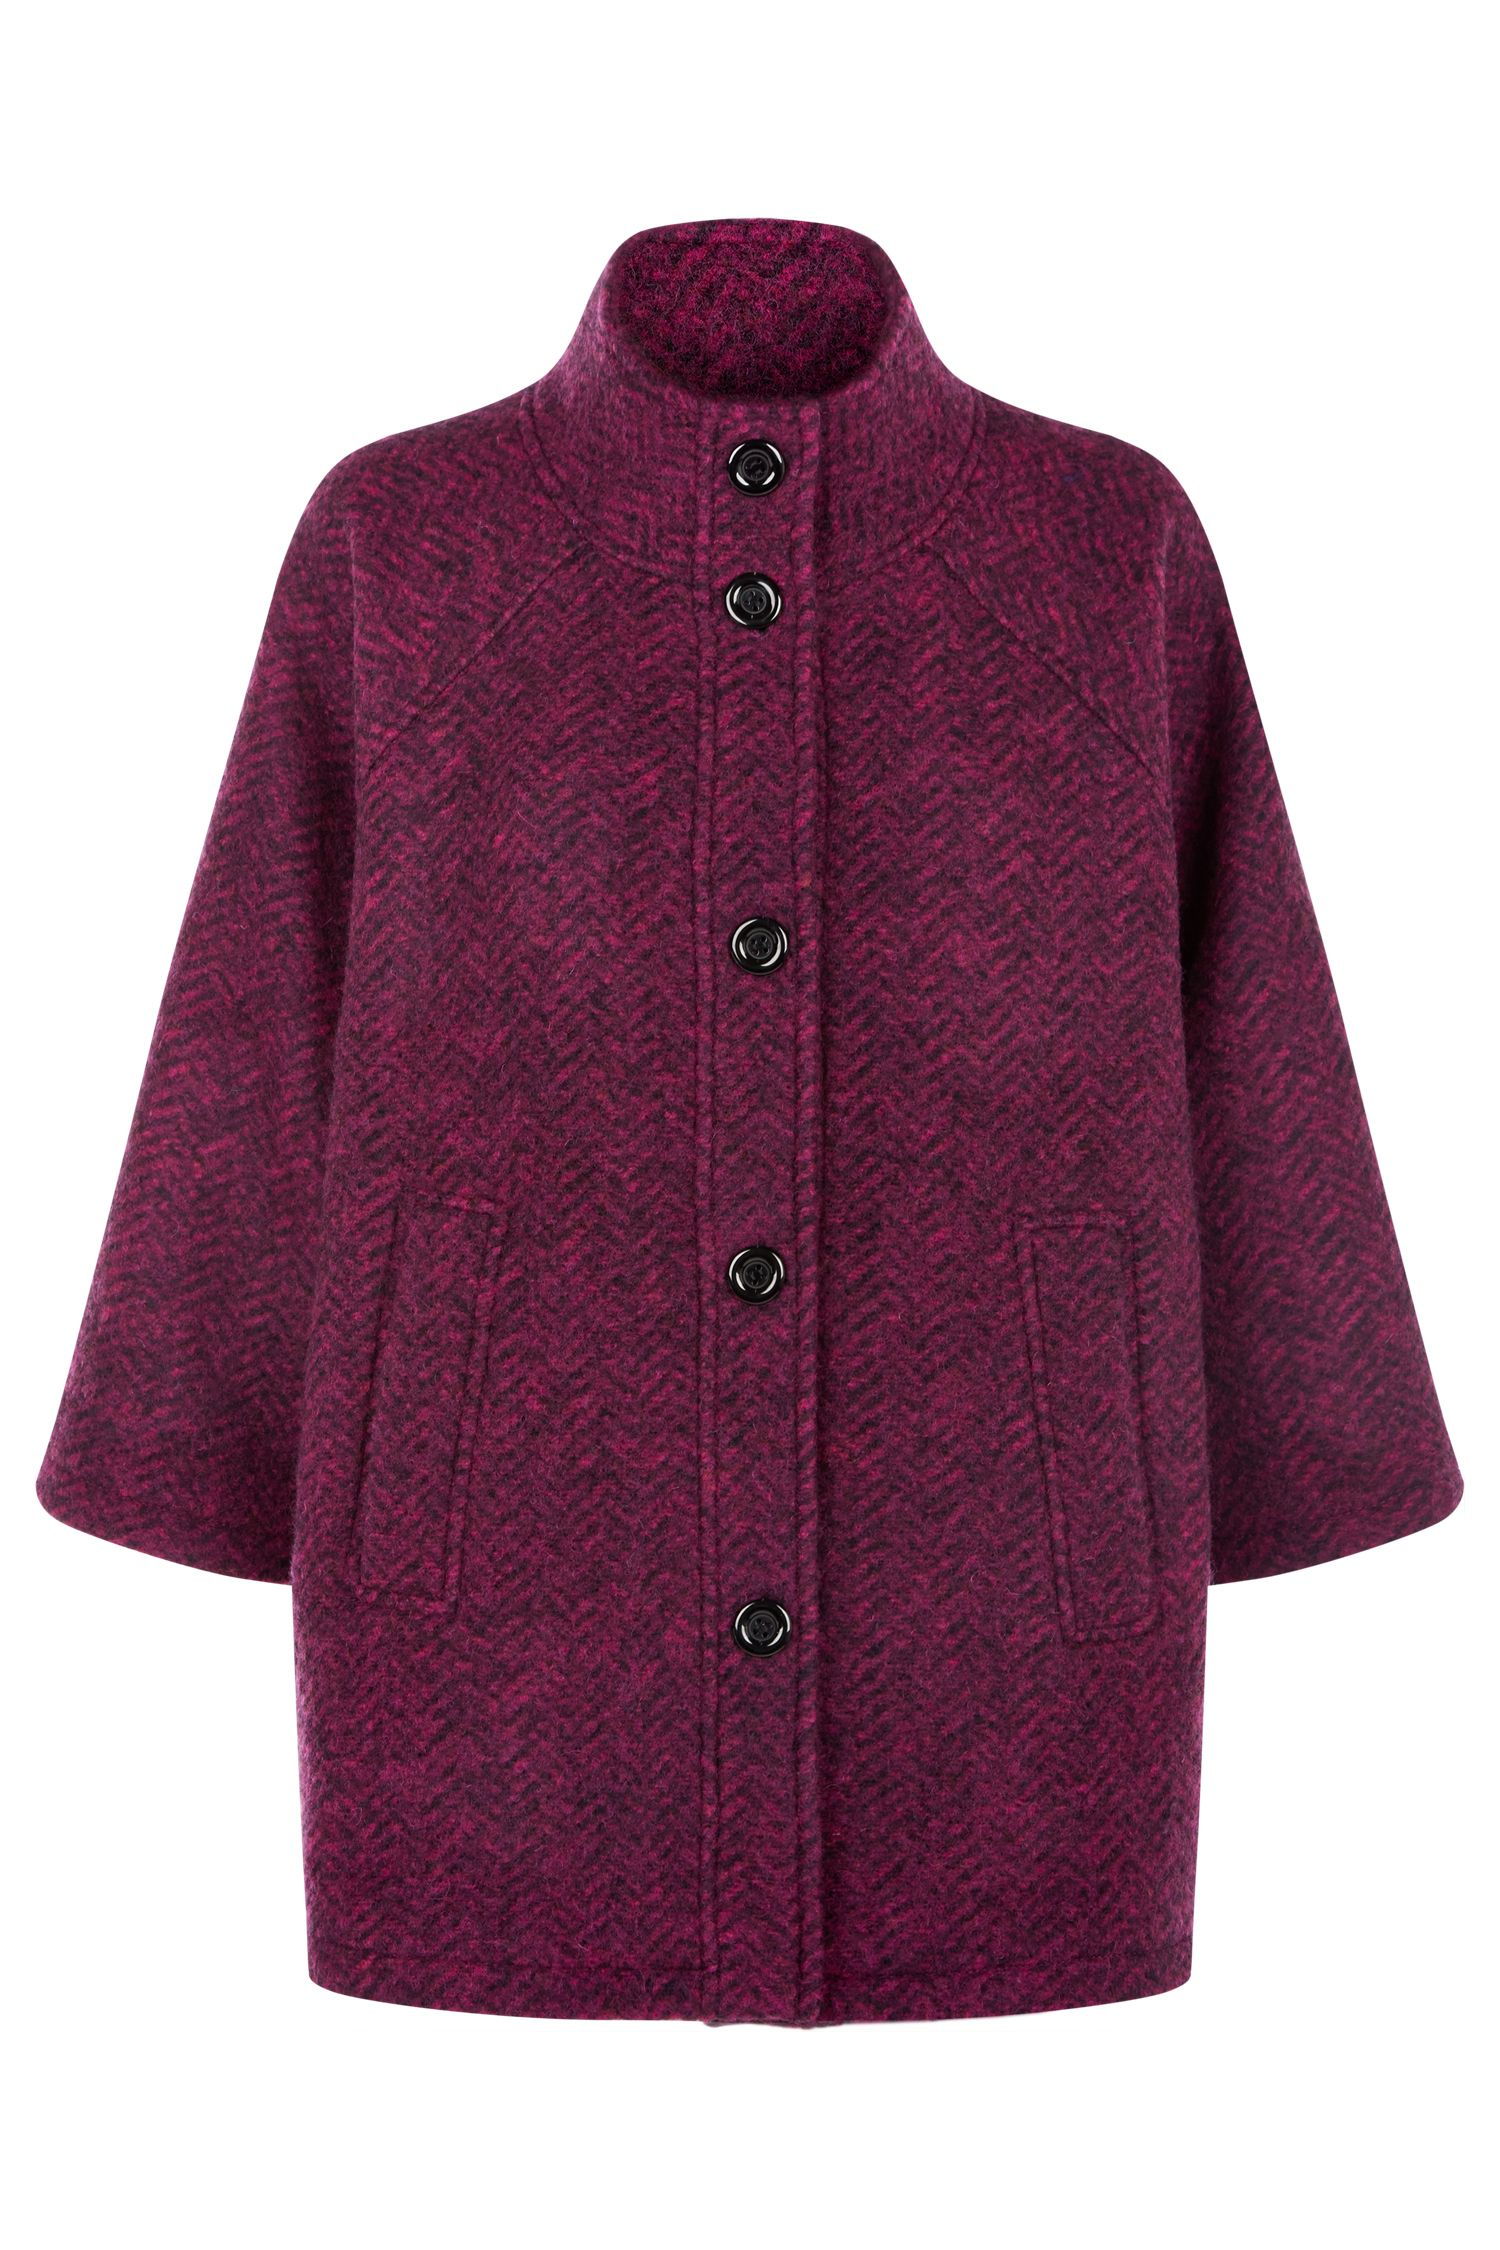 Fenn Wright Manson Satellite Coat, Pink